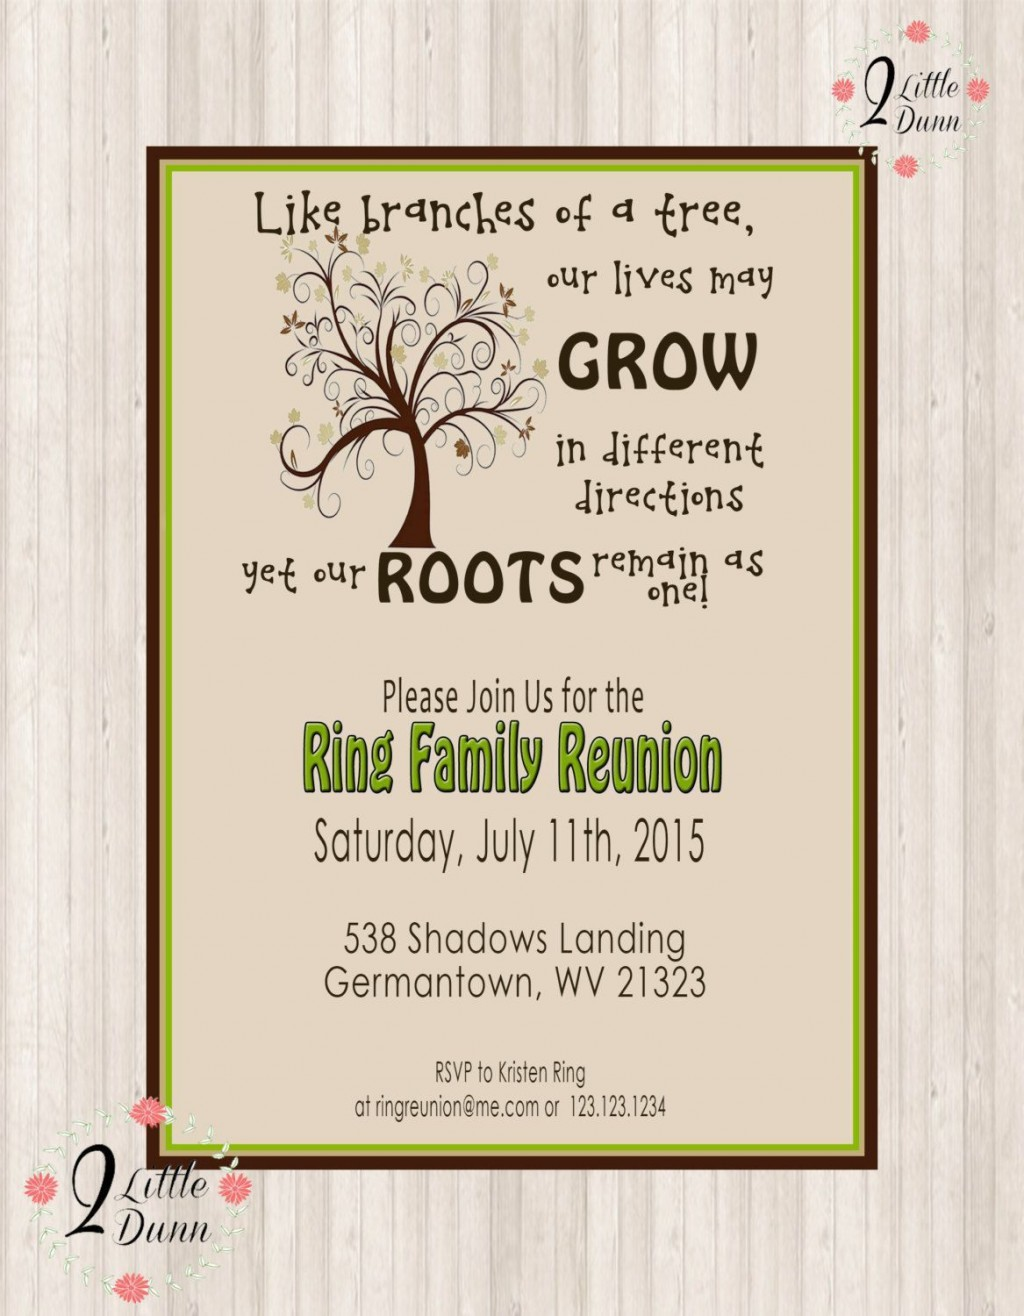 007 Fantastic Free Printable Family Reunion Invitation Template High Definition  Templates FlyerLarge